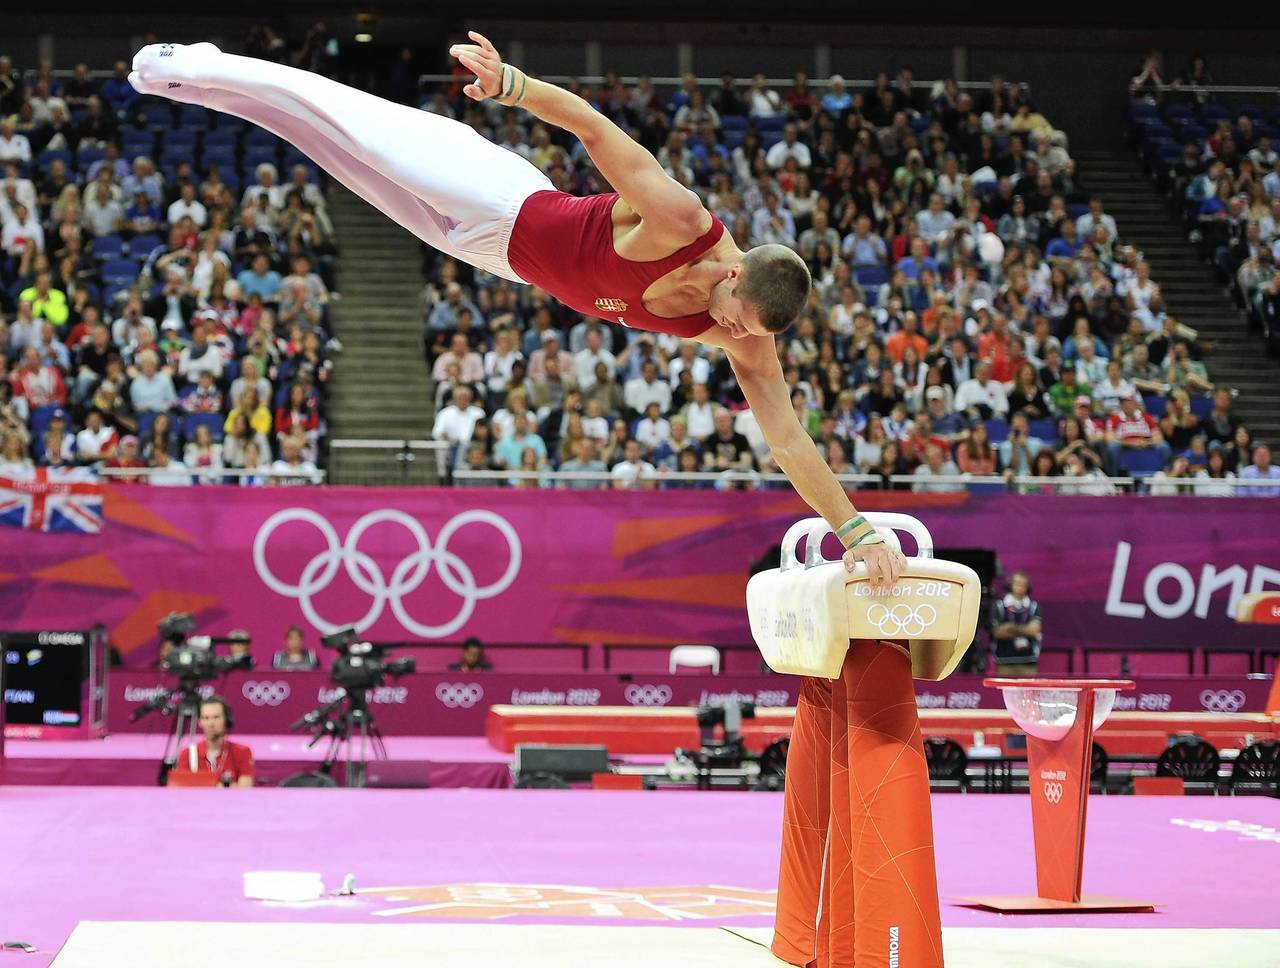 Krisztian Berki of Hungary competes on the horse during the men's pommel horse final.